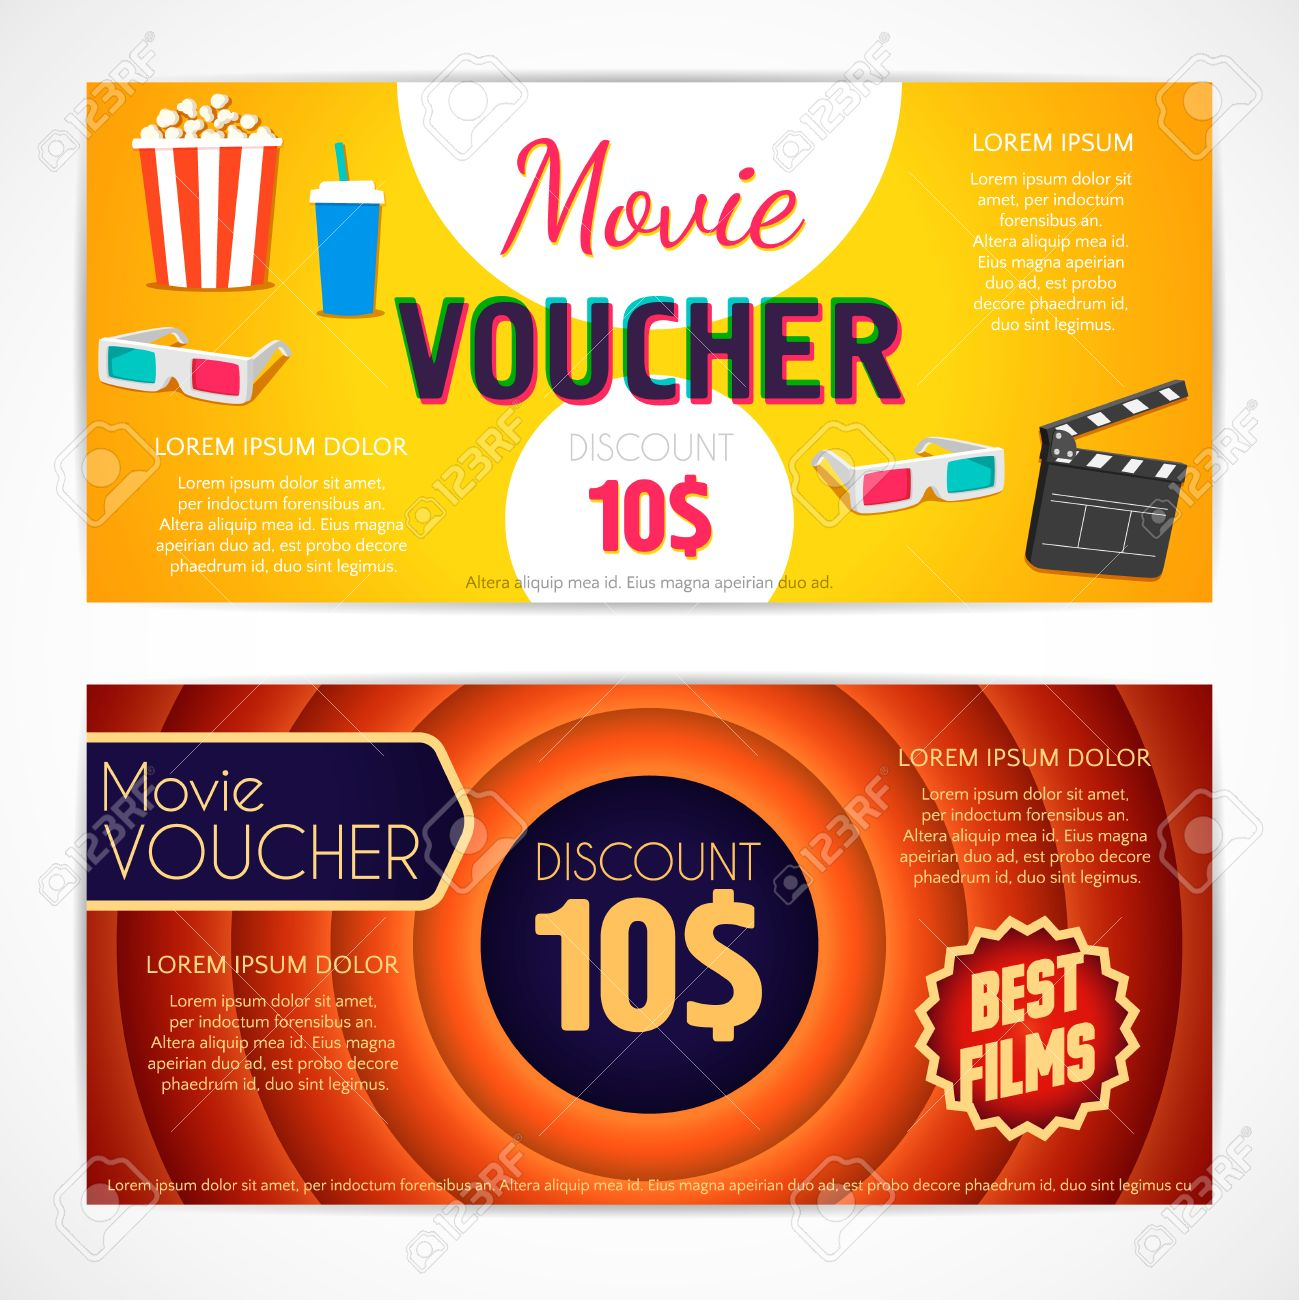 Discount Voucher Movie Template, Cinema Gift Certificate, Coupon.. Pertaining To Movie Gift Certificate Template